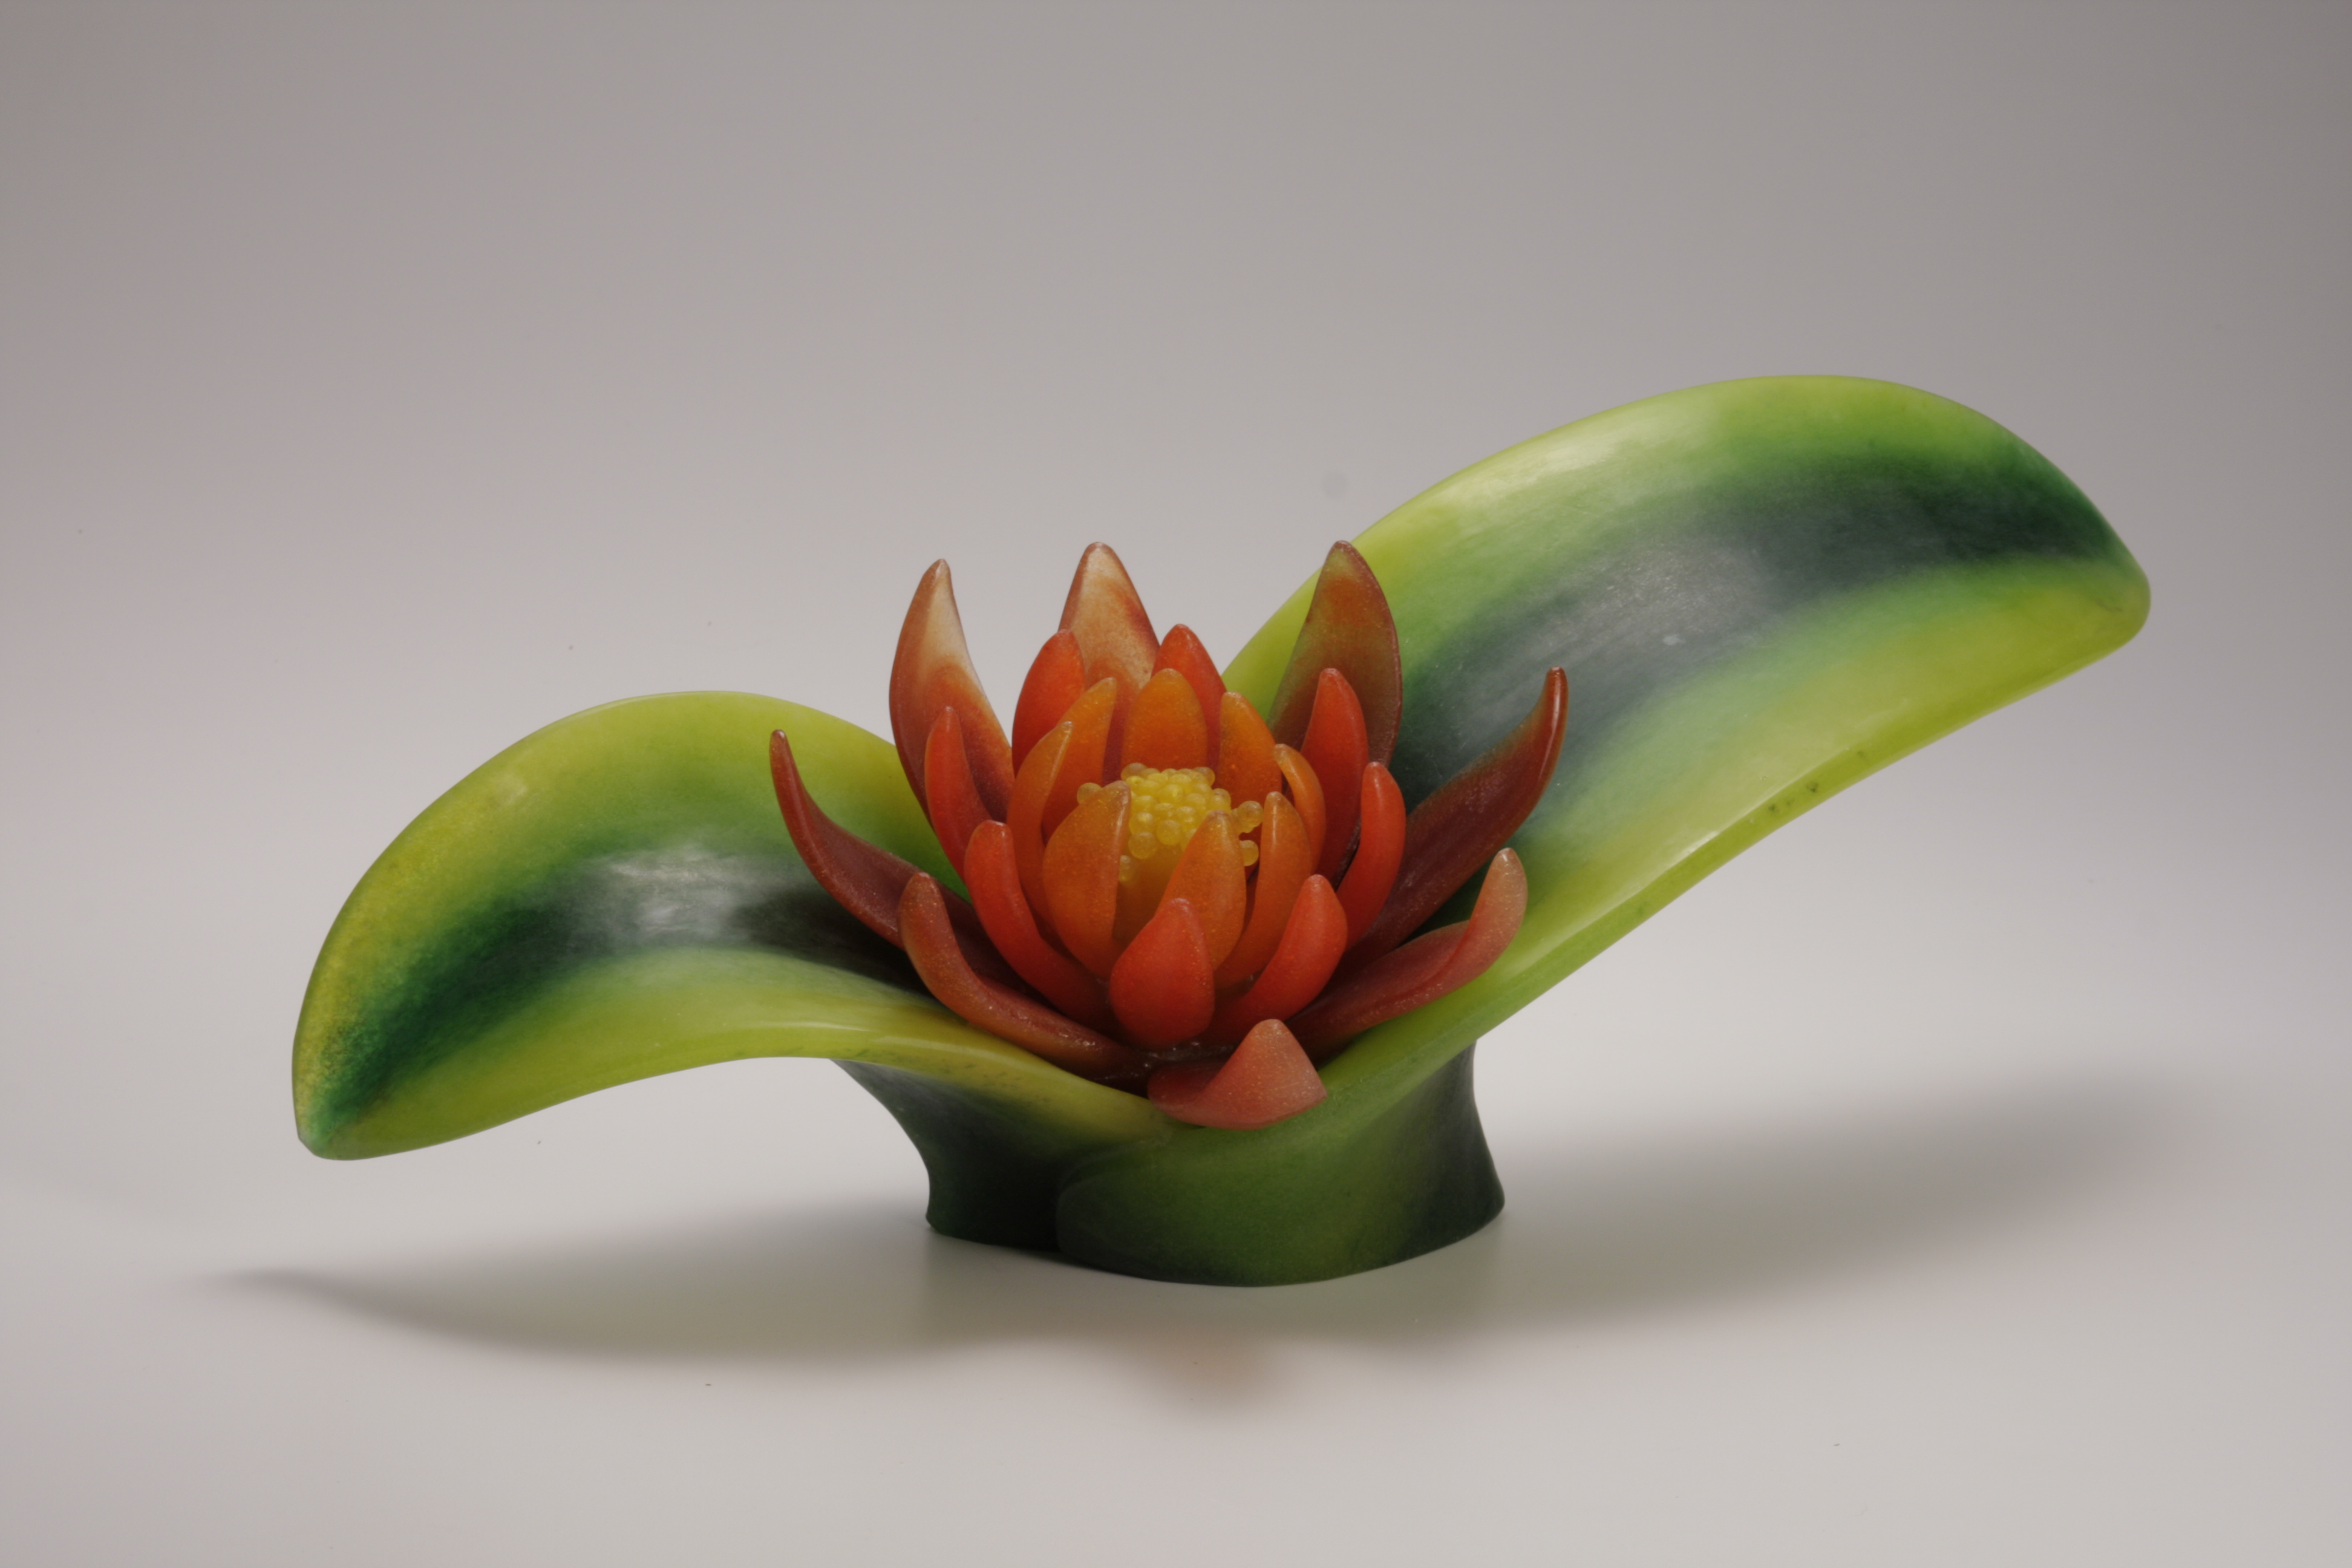 Cast glass succulent plant with with orange flower in green leaves.